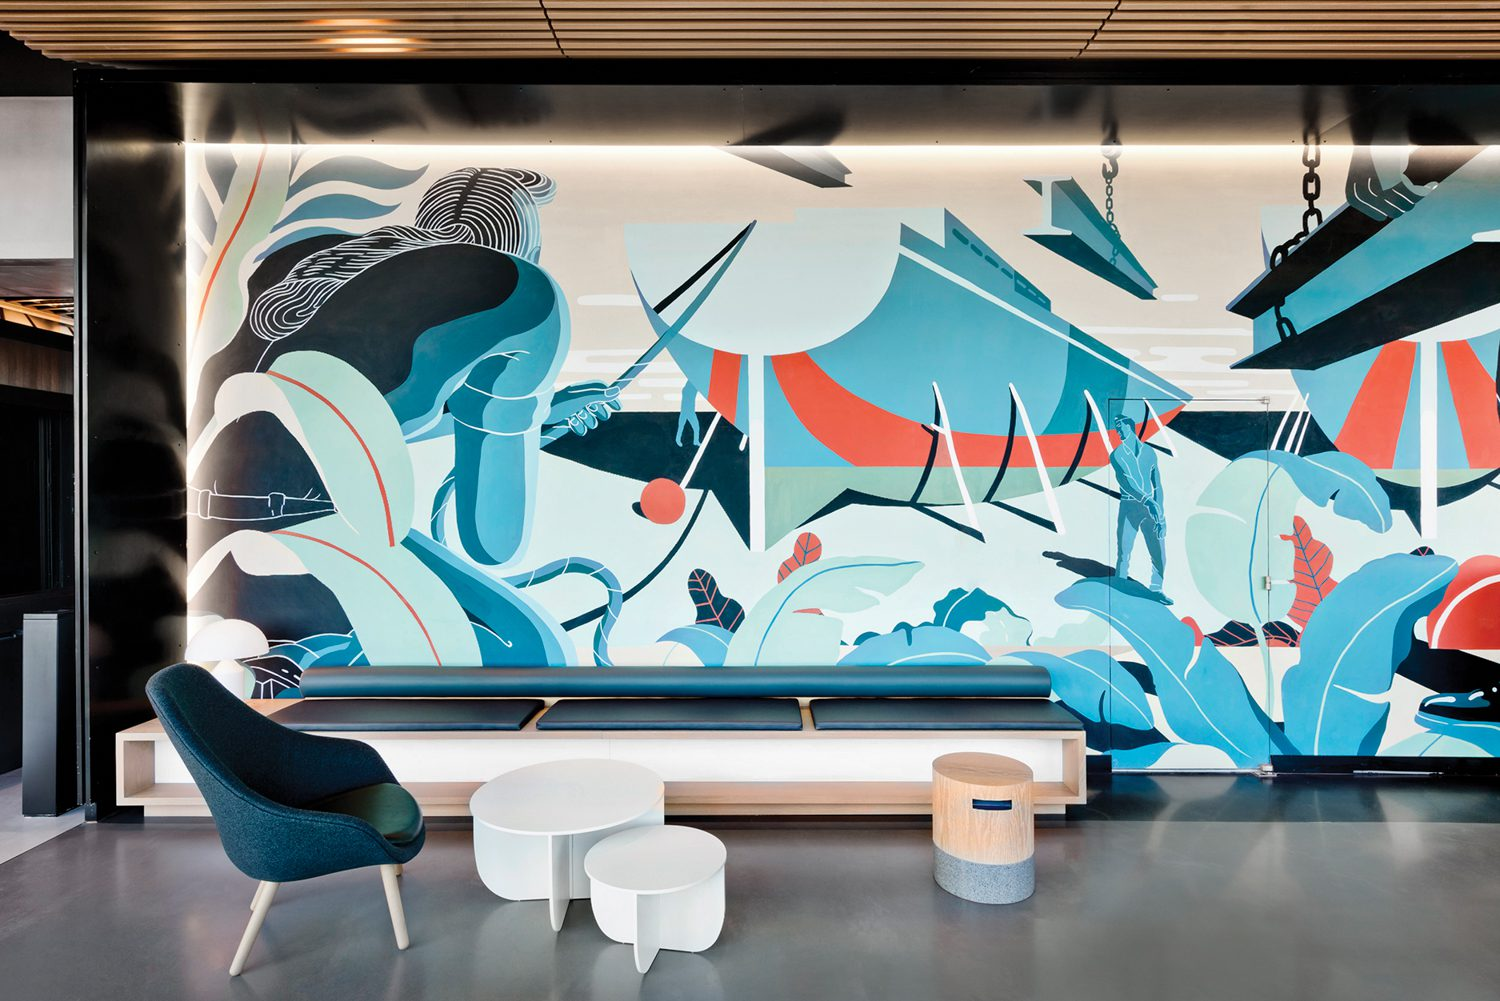 Bryce Wymer's mural anchors another lobby vignette.